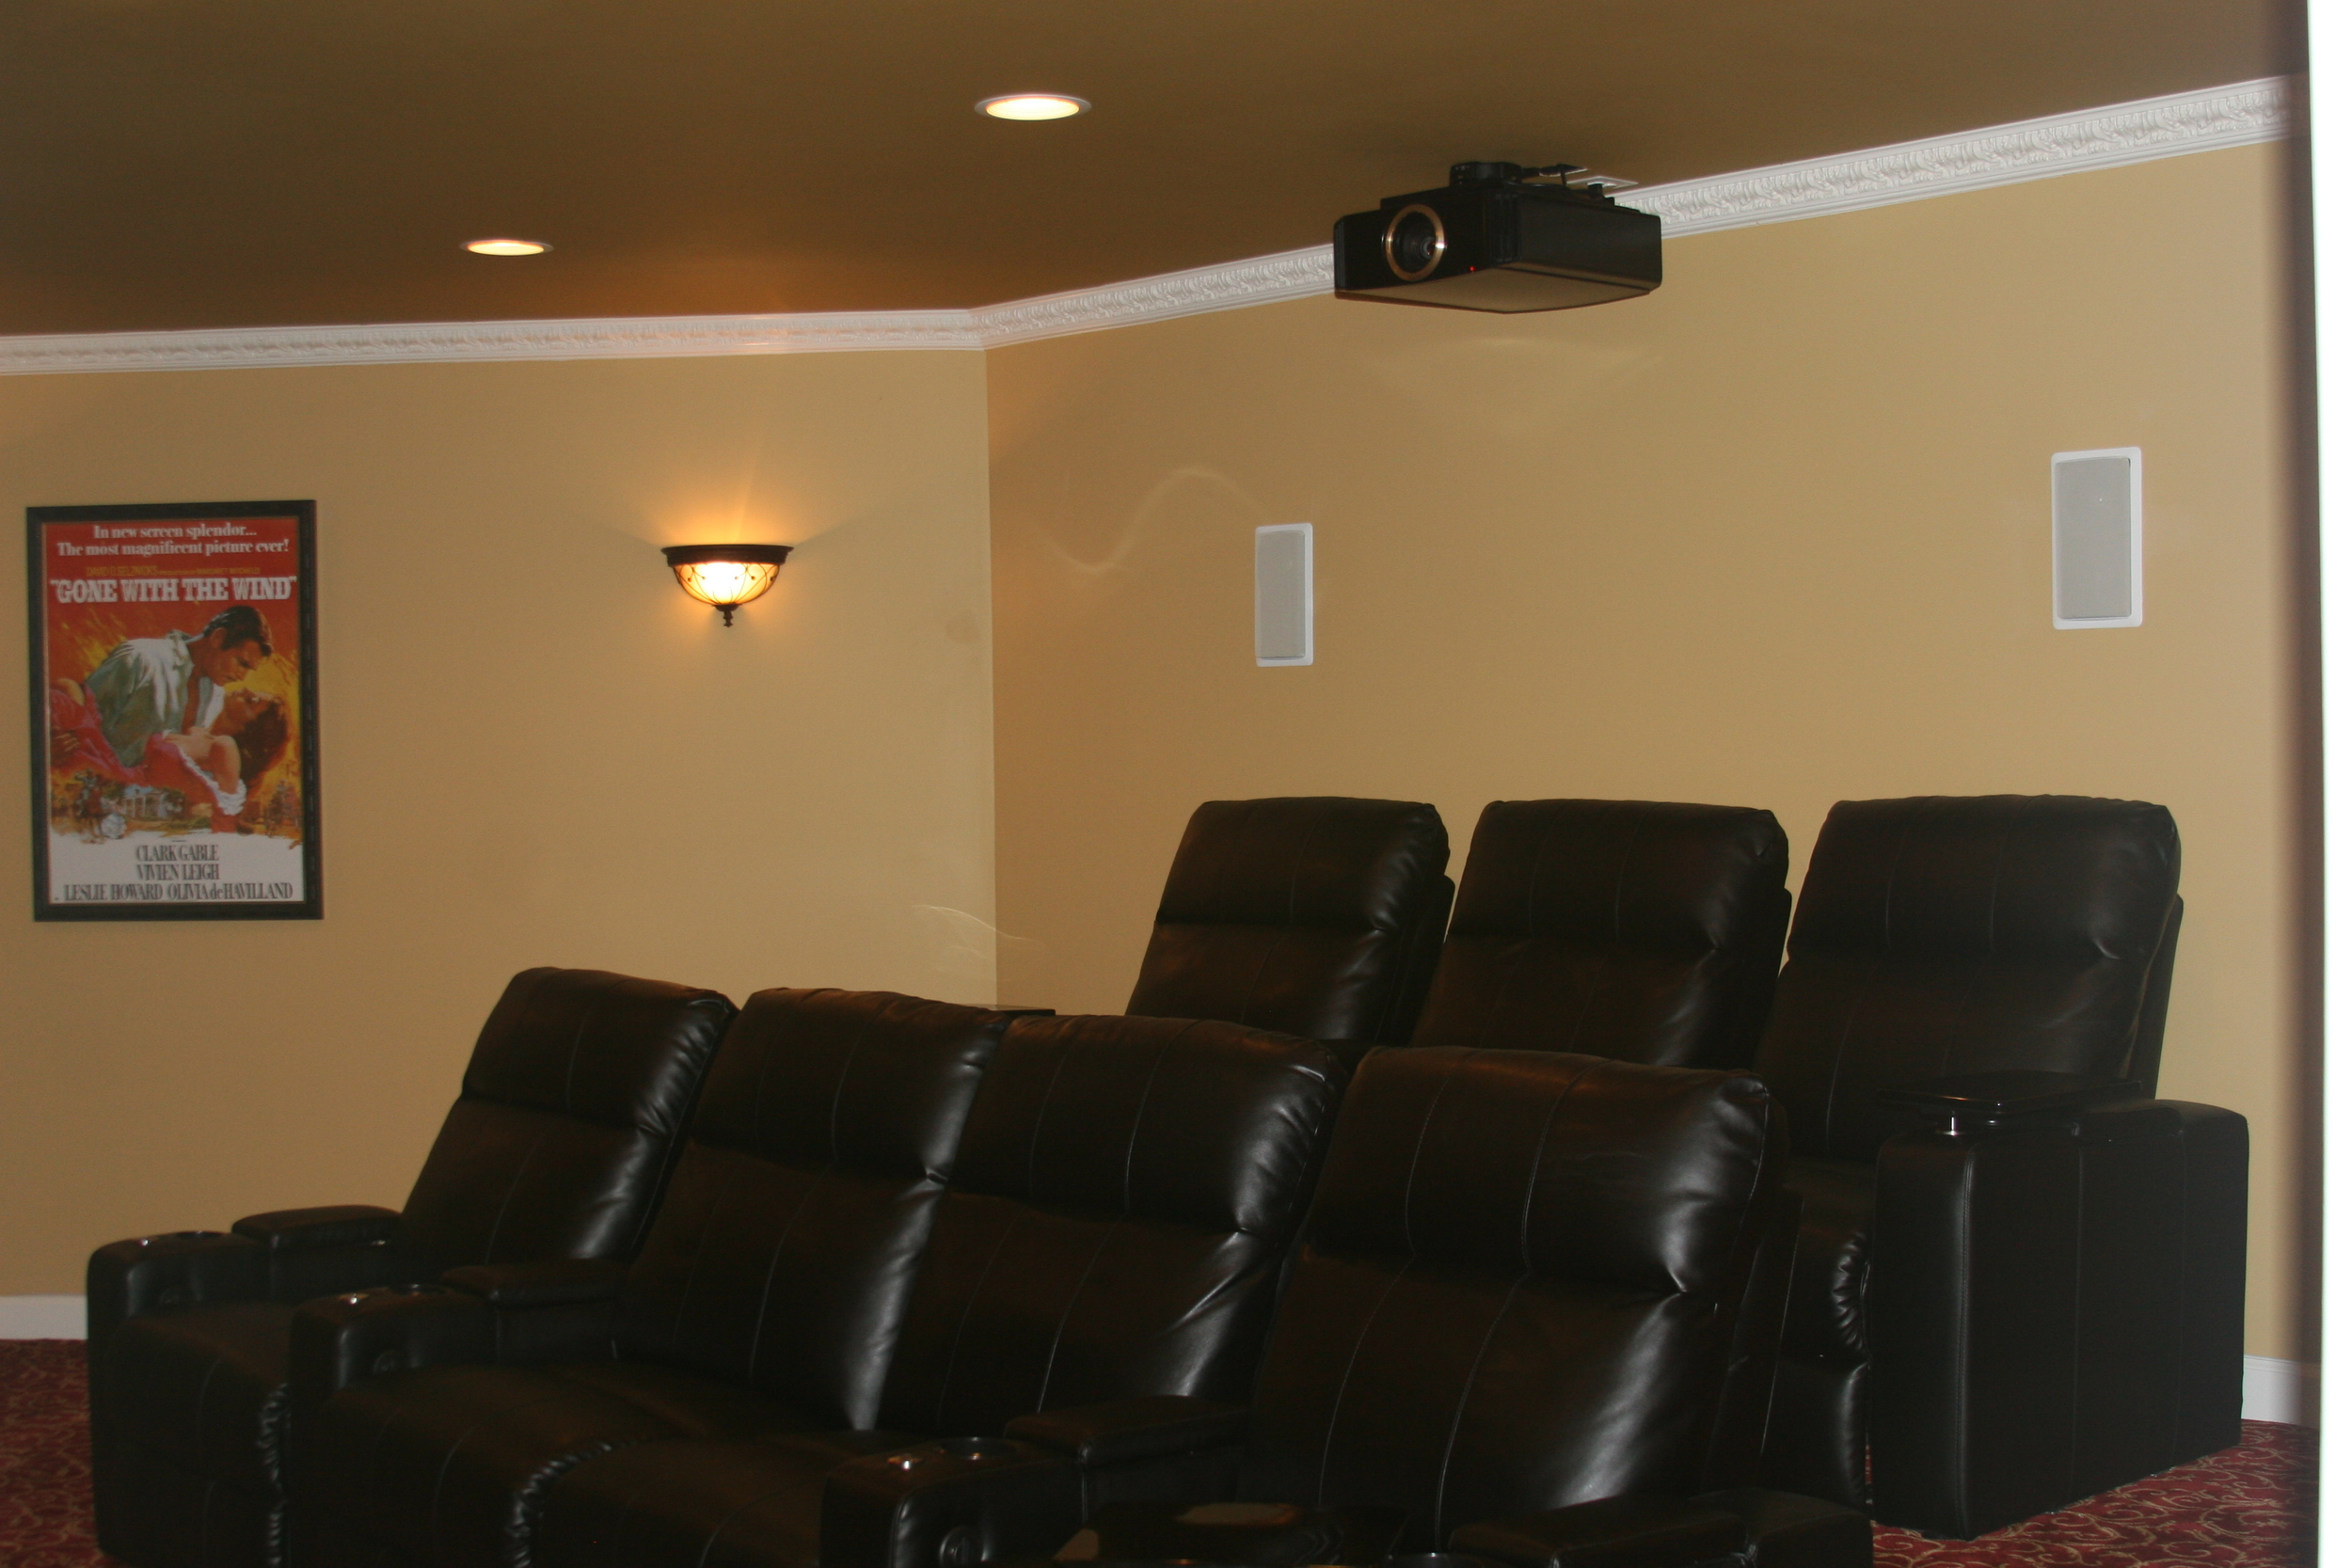 Home Theater System with projector, screen and in wall speakers.